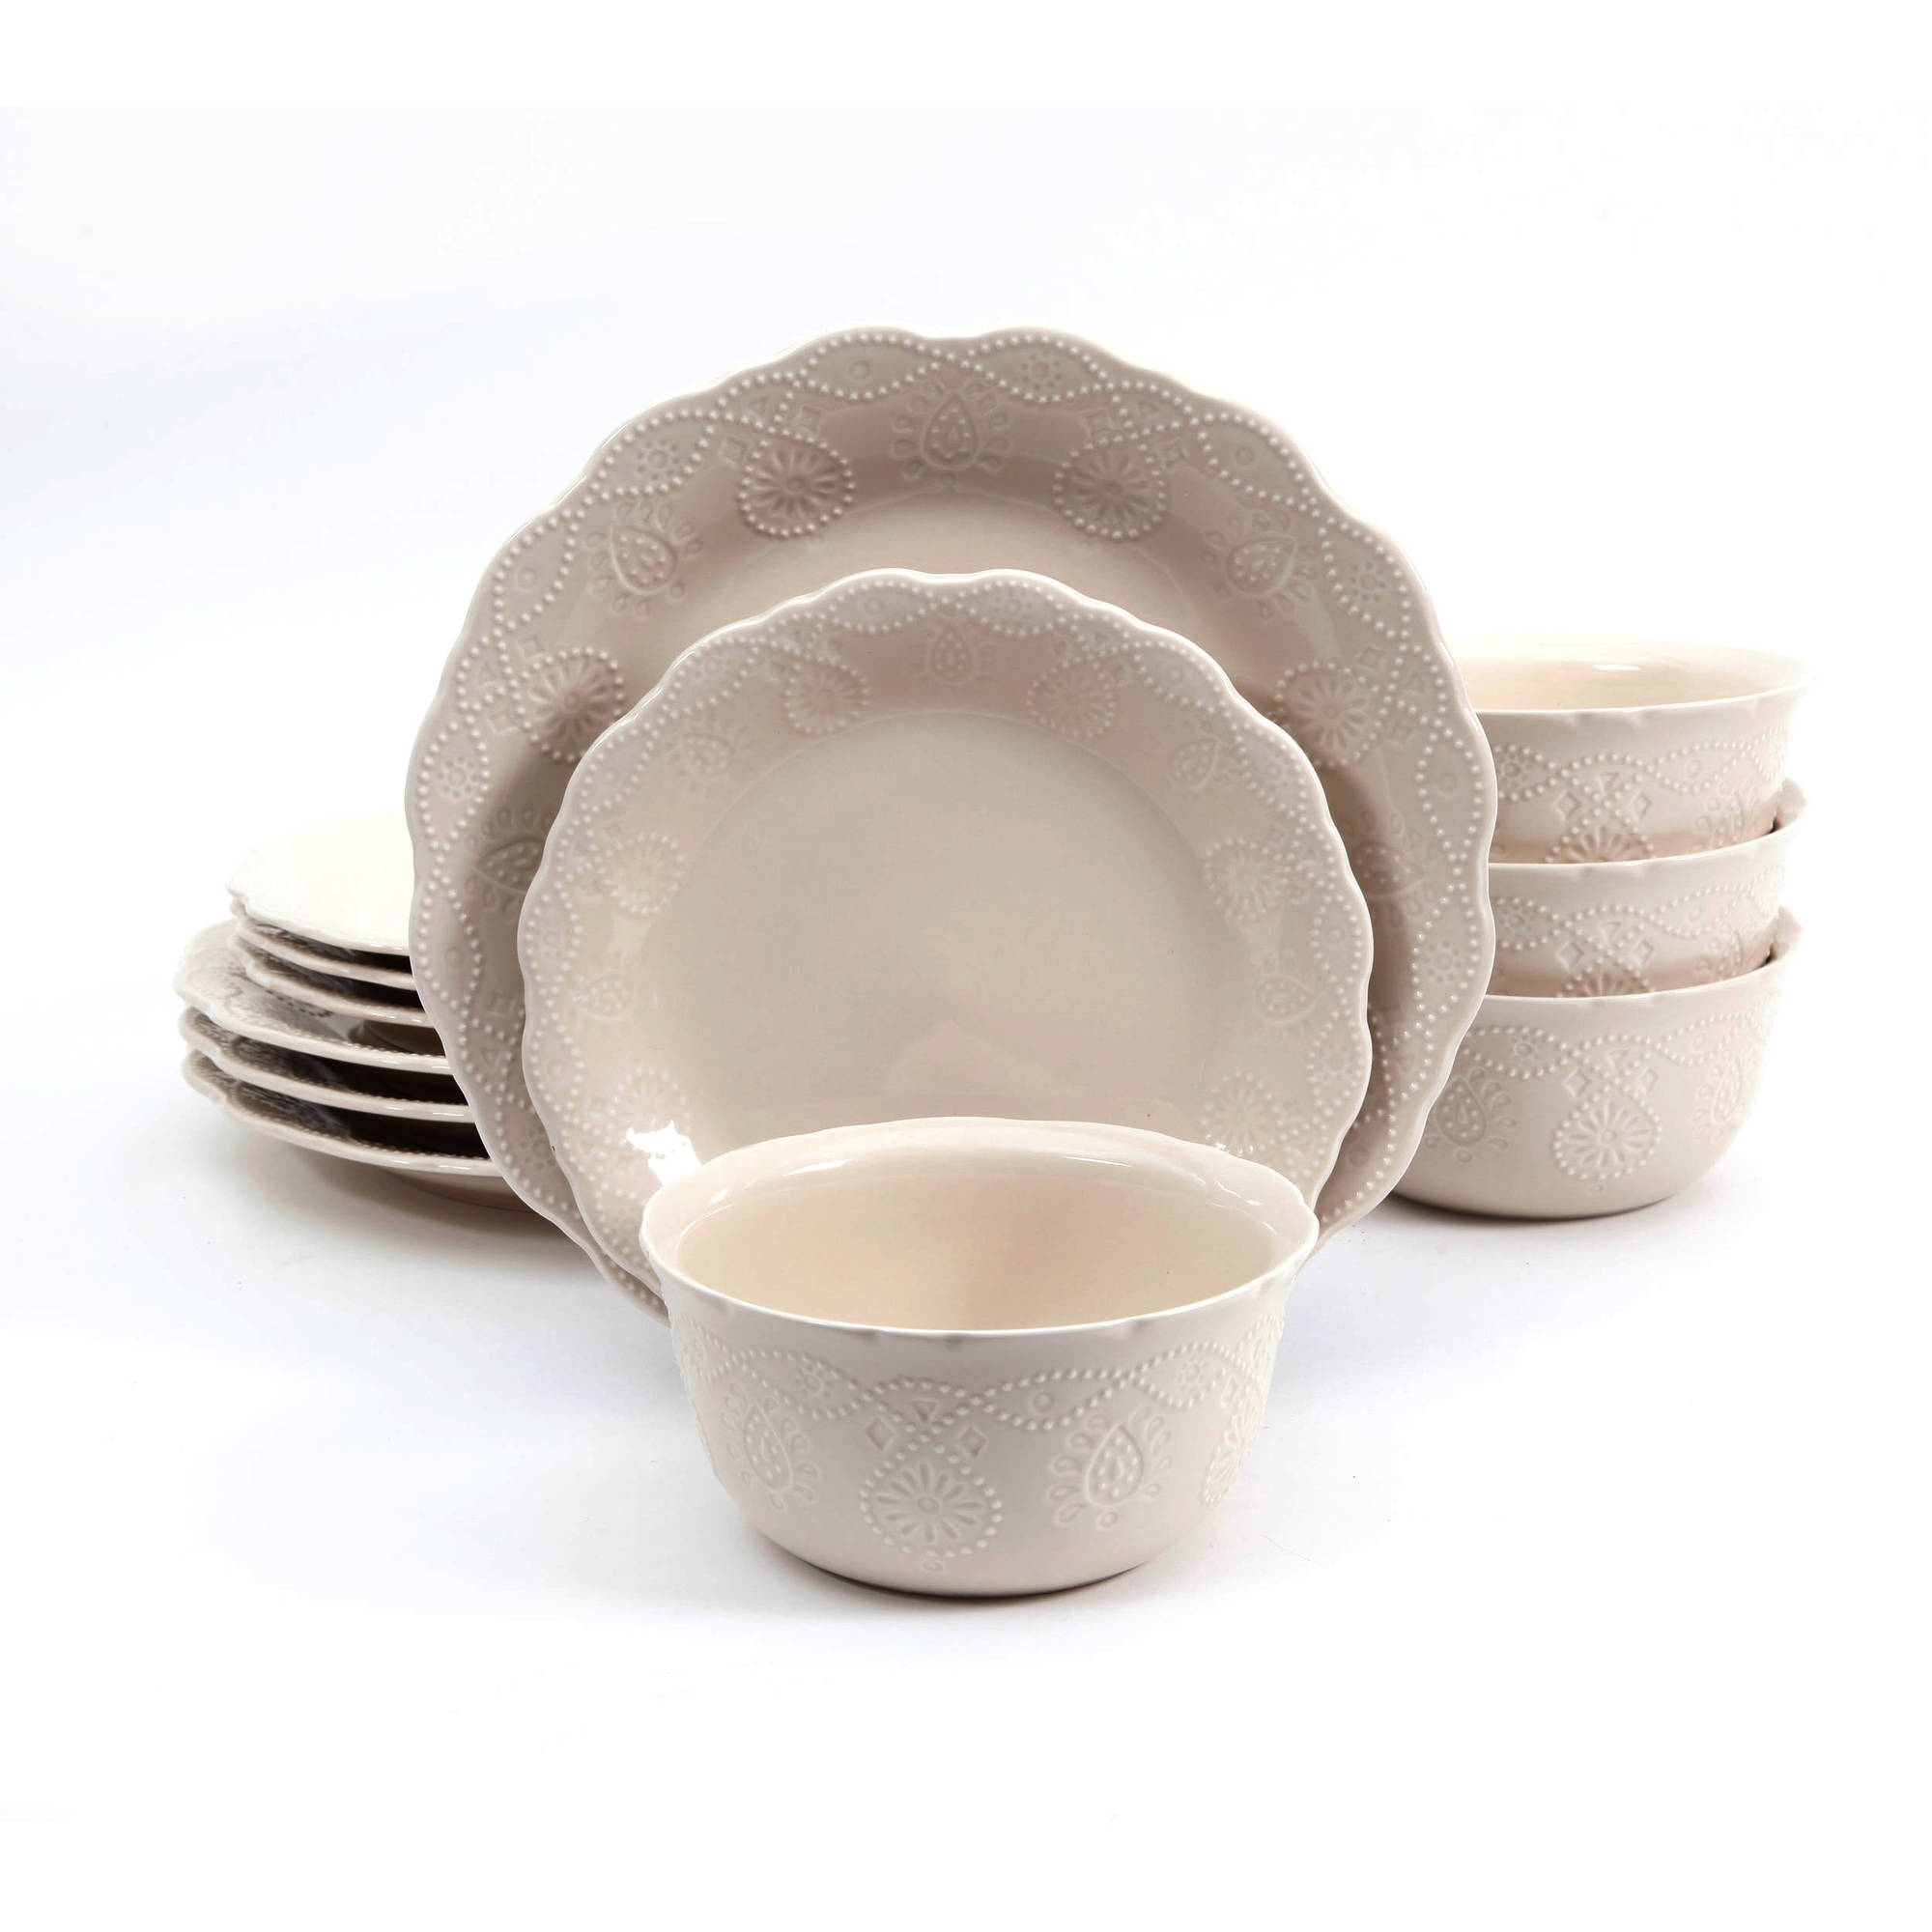 ORIGINAL The Pioneer Woman Cowgirl Lace 12Piece Dinnerware Set White Service  sc 1 st  eBay & ORIGINAL The Pioneer Woman Cowgirl Lace 12Piece Dinnerware Set White ...